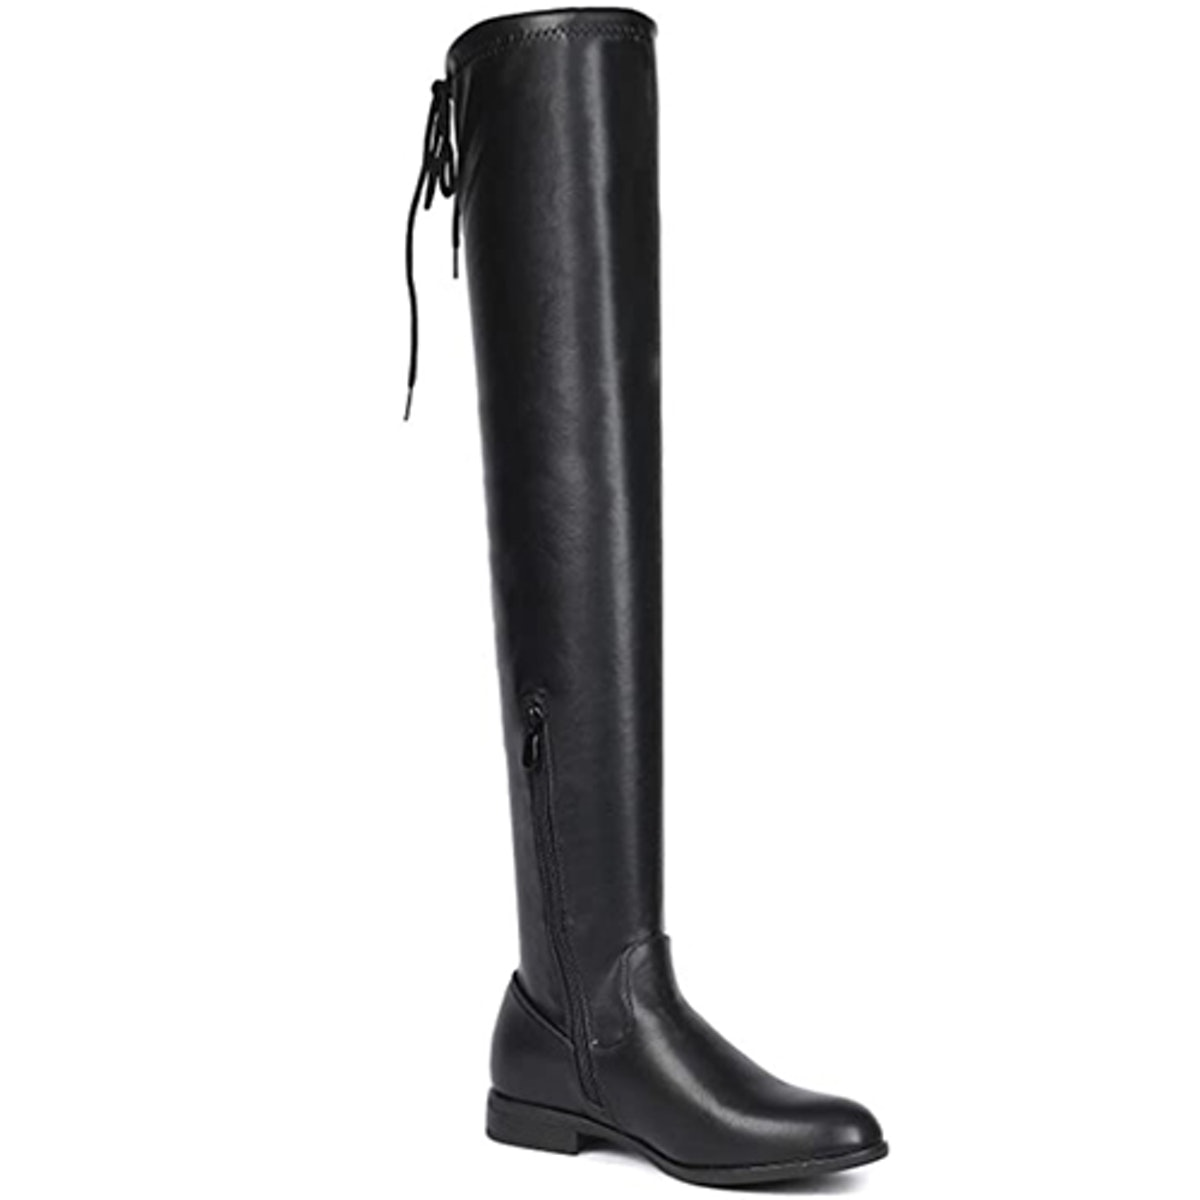 DREAM PAIRS Over-The-Knee Flat Boots